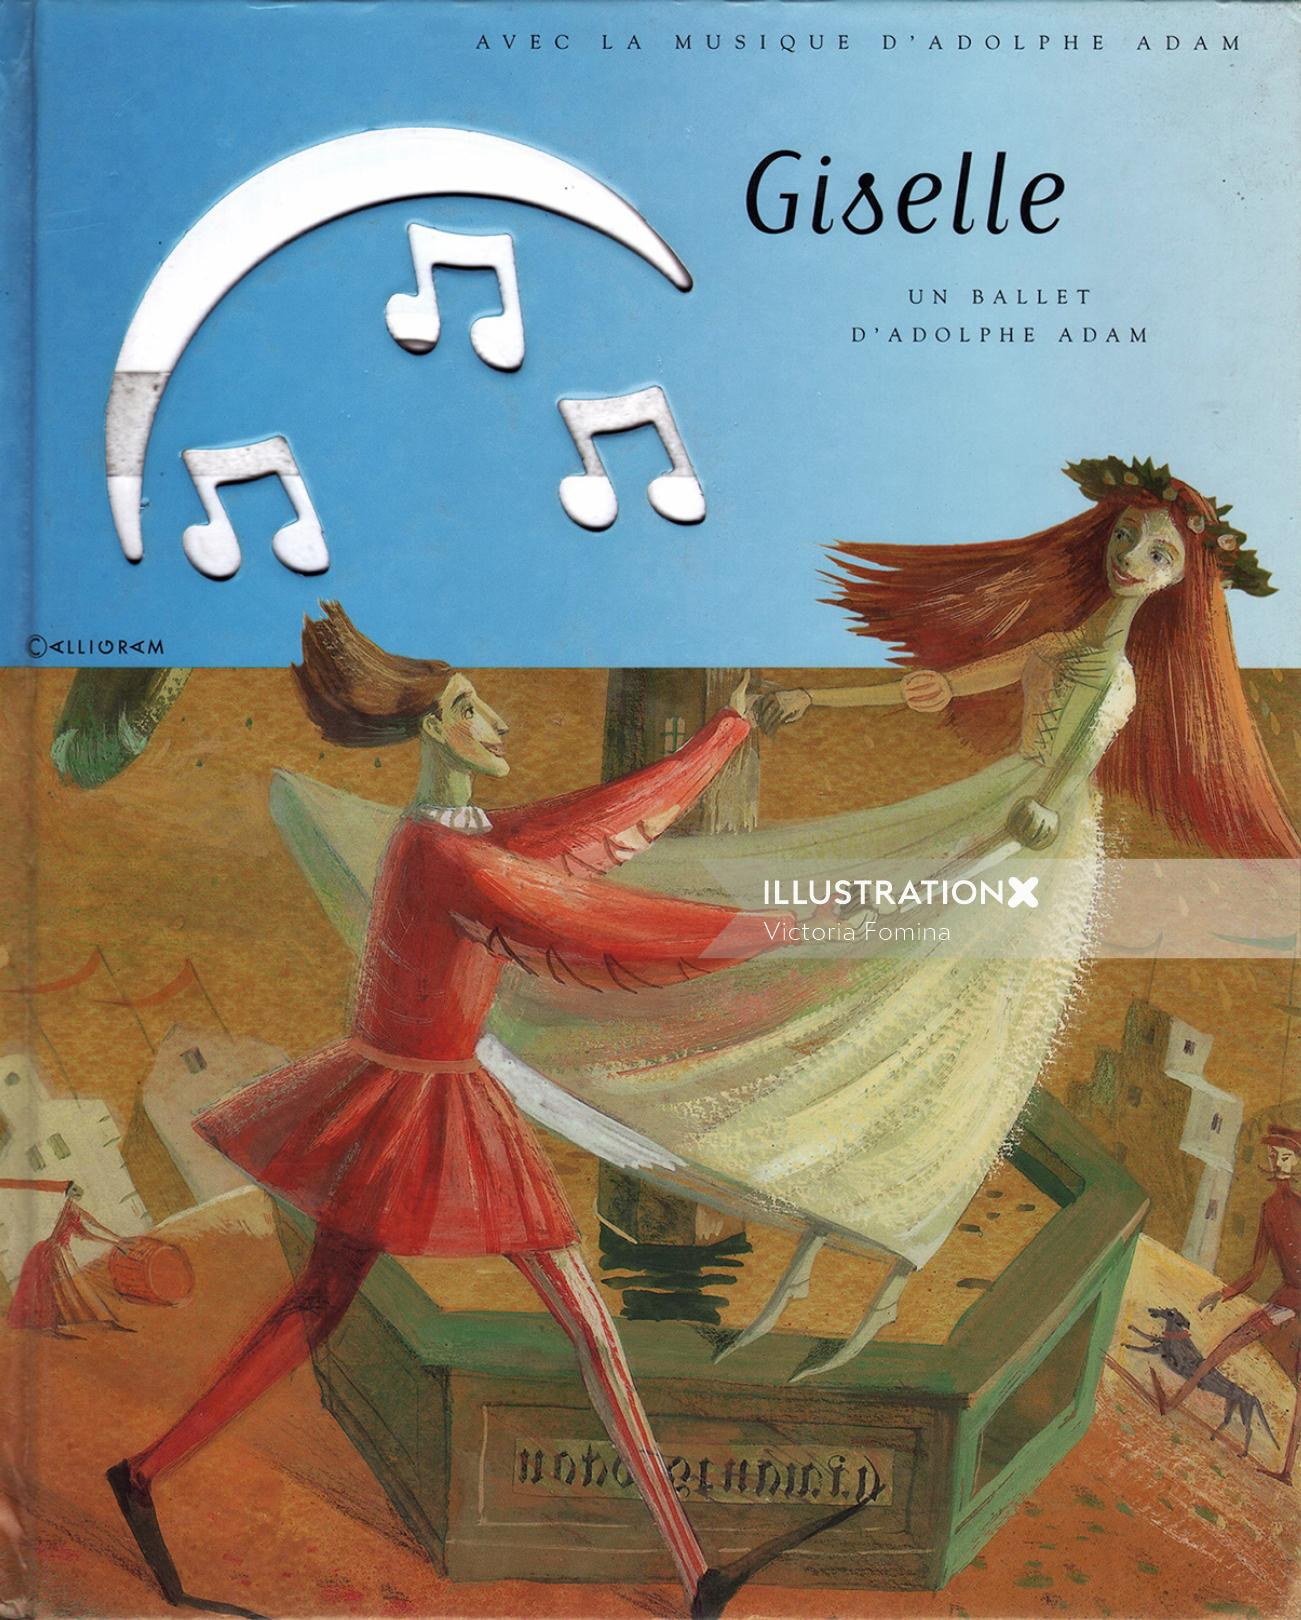 Giselle book cover design